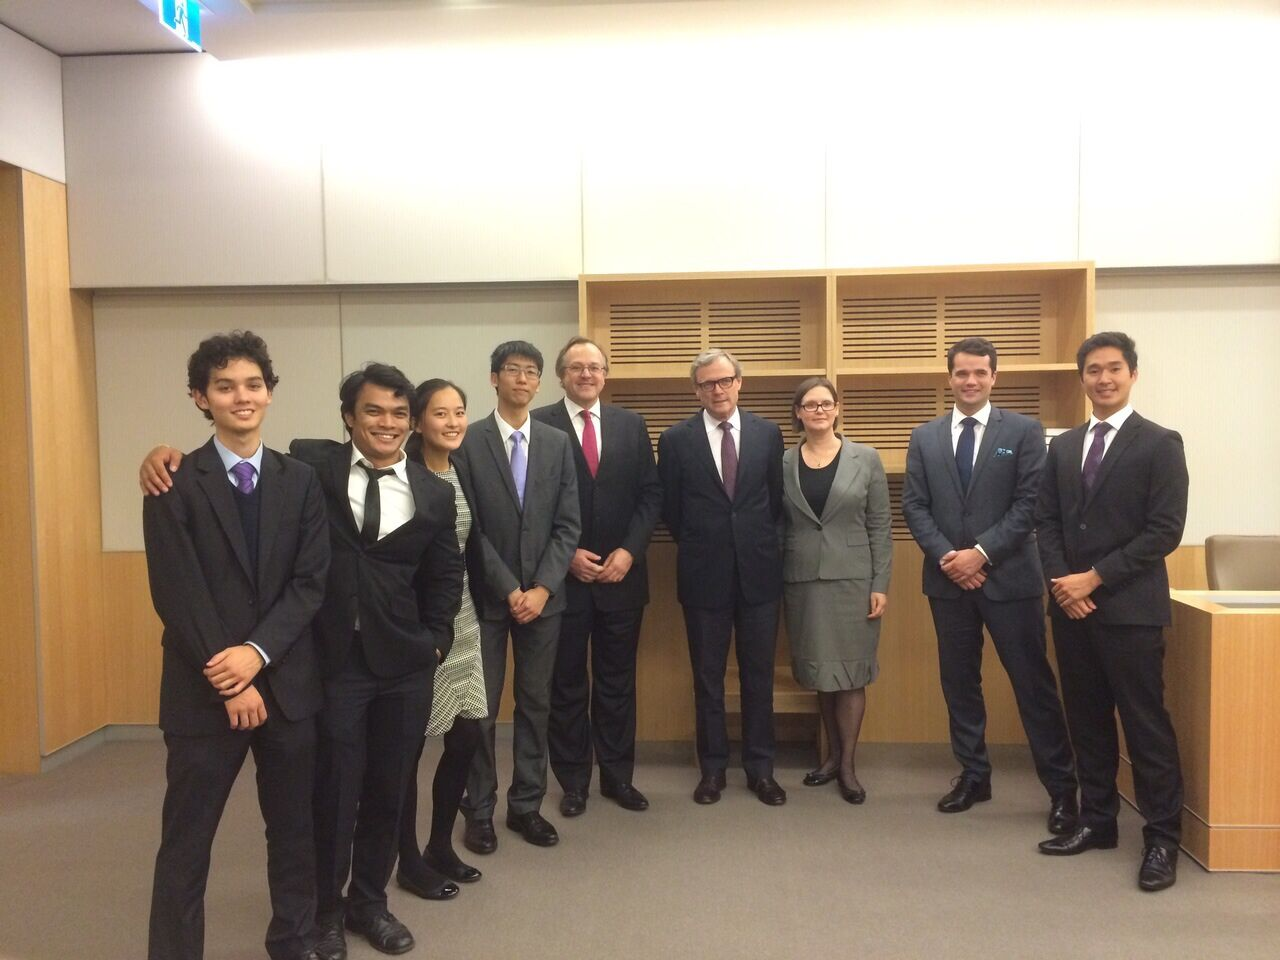 The grand finalists of the 2015 Ashurst Private Law Moot, from the University of New South Wales and the University of Melbourne, with Justice Anthony Meagher (NSW Court of Appeal), Justice Richard White (NSW Supreme Court) and Professor Simone Degeling (Co-Director of the Private Law and Policy Research Group, UNSW)